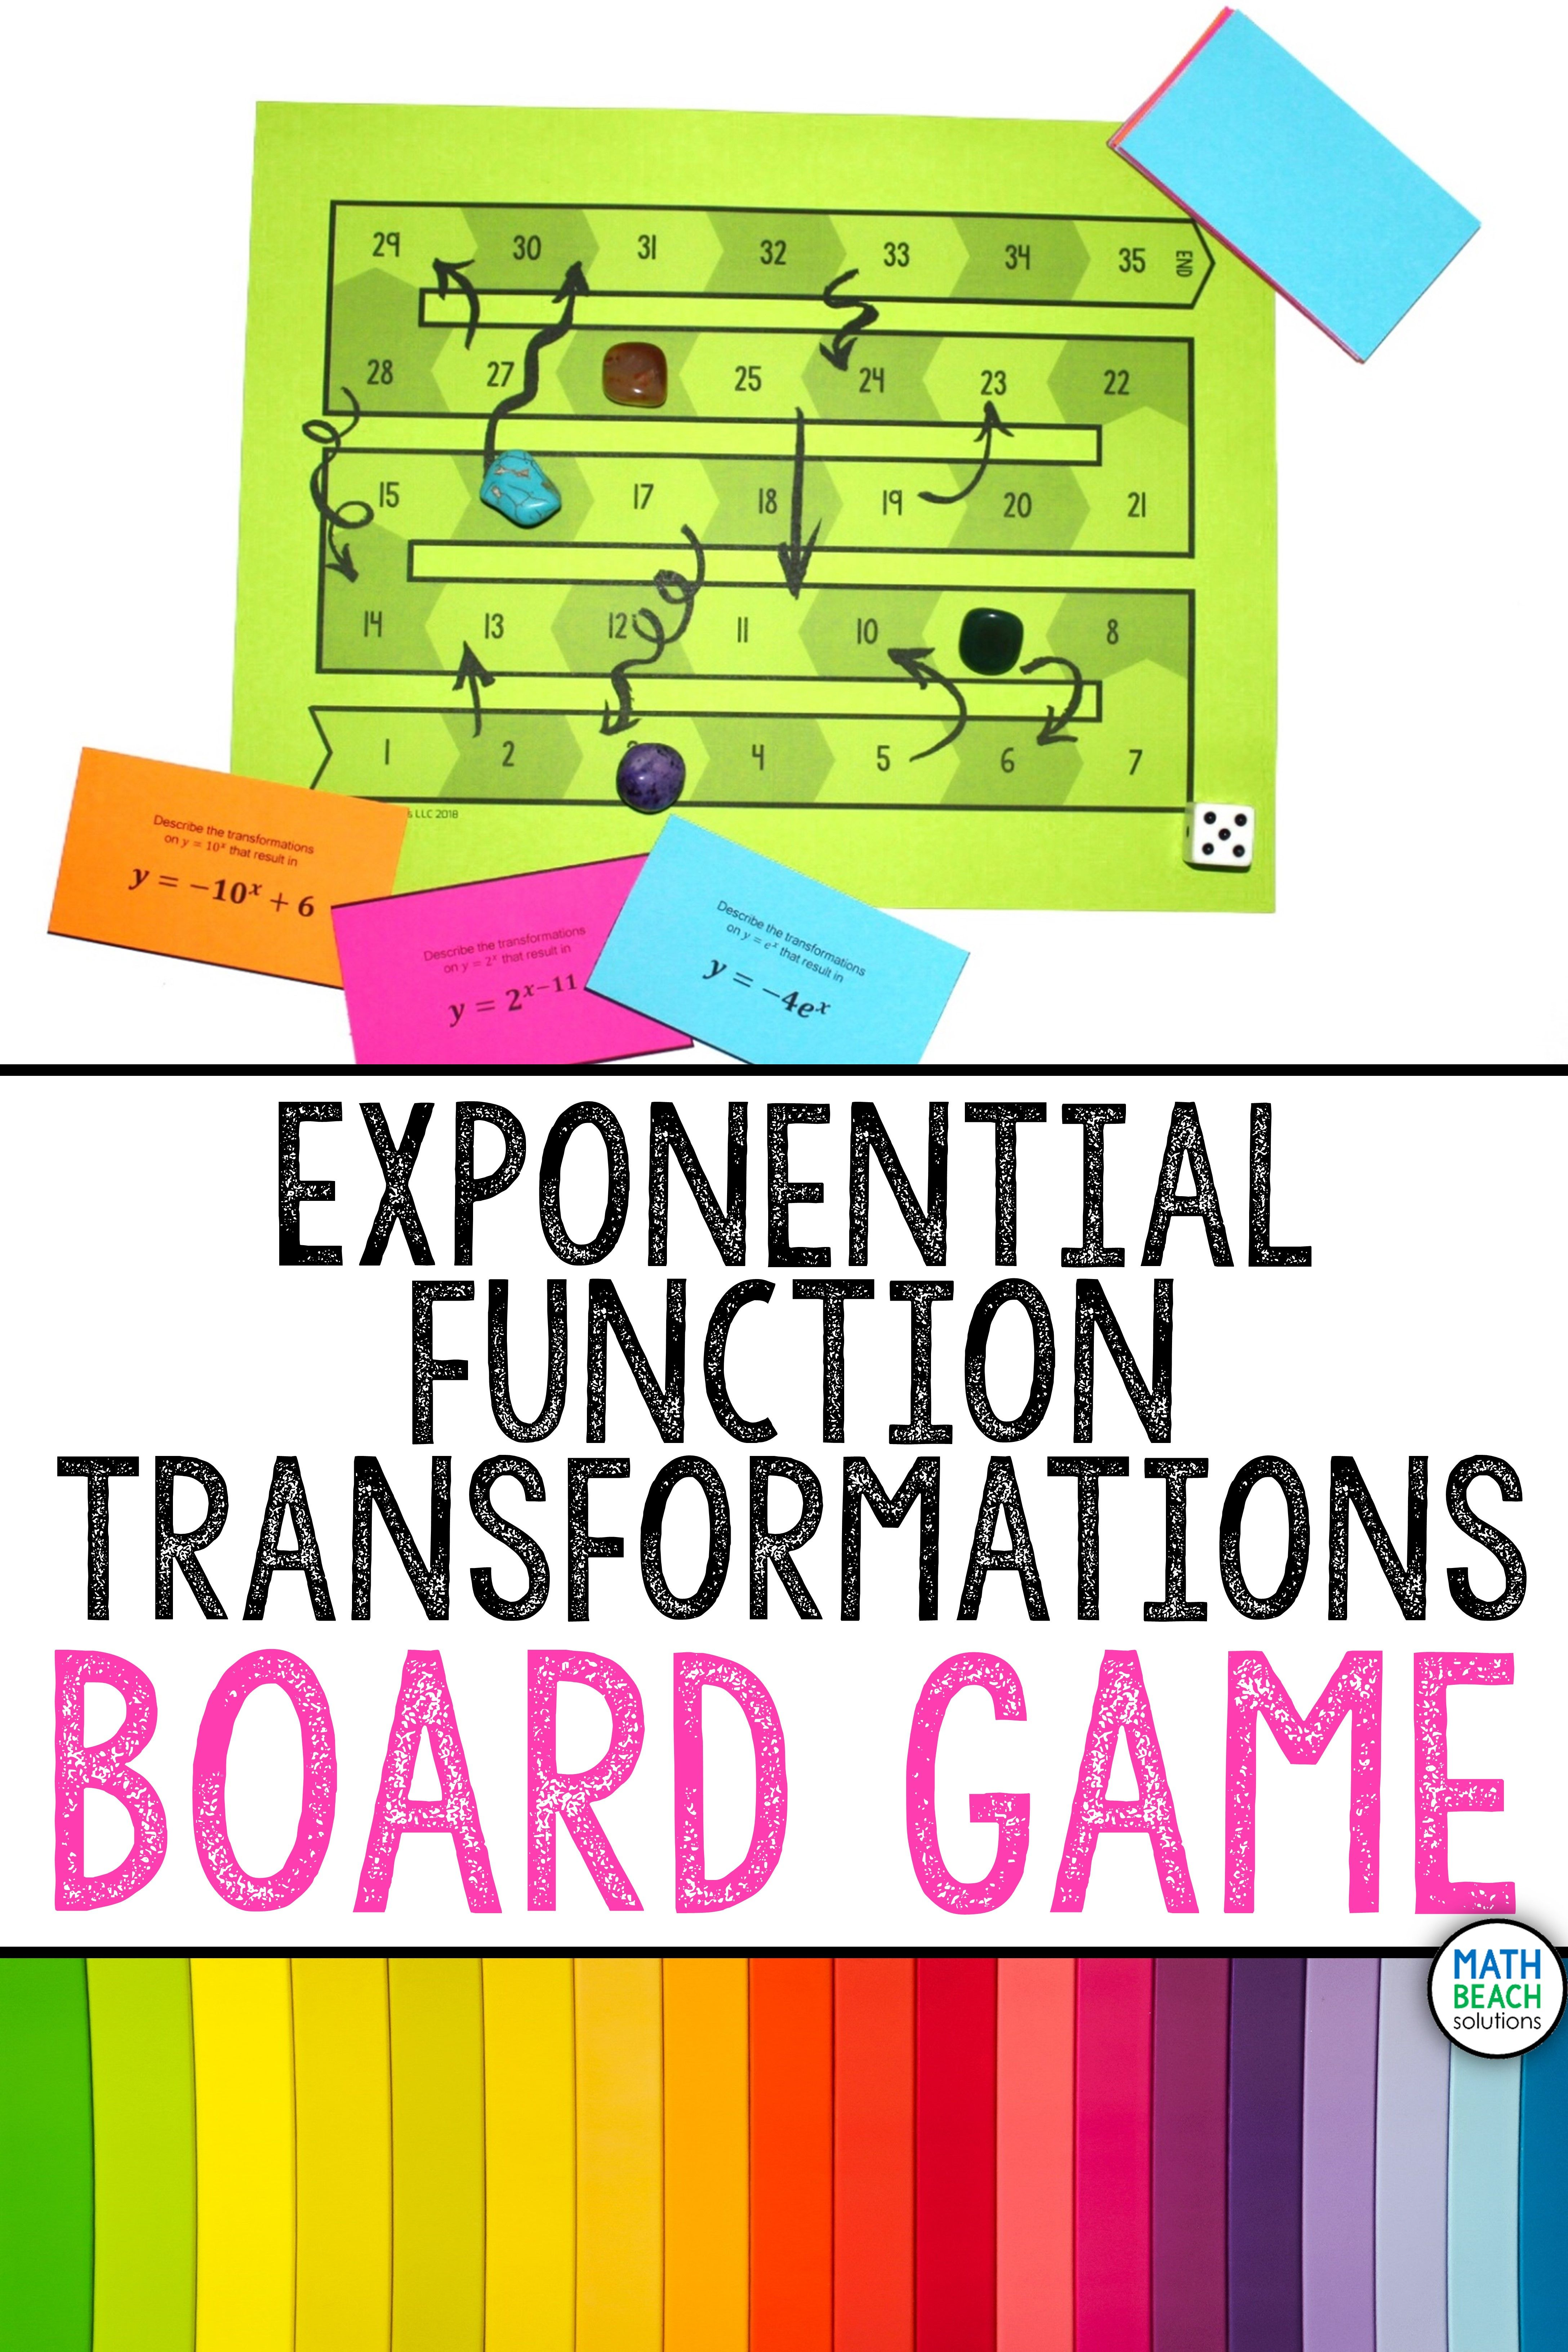 Exponential Function Transformations Board Game Activity Algebra Activities Exponential Functions Algebra 2 Activities